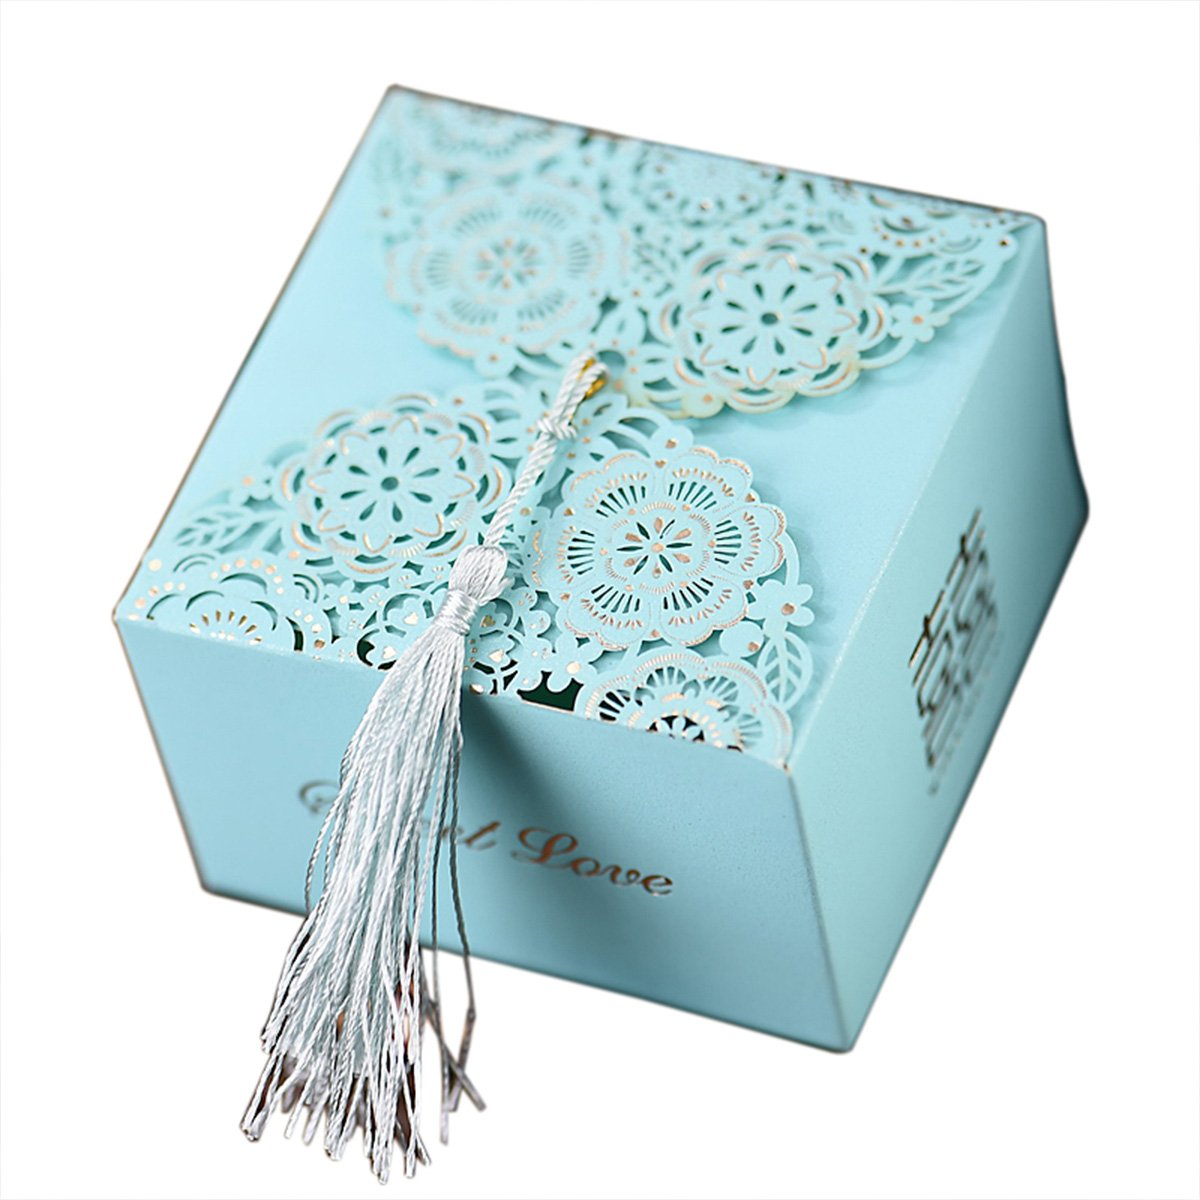 autulet Large Size Unique Wedding Favors Hard Paper Wedding Gift Boxes Storage Box Classic Chinese Style 10Pcs (Candies or Chocolates not Included)